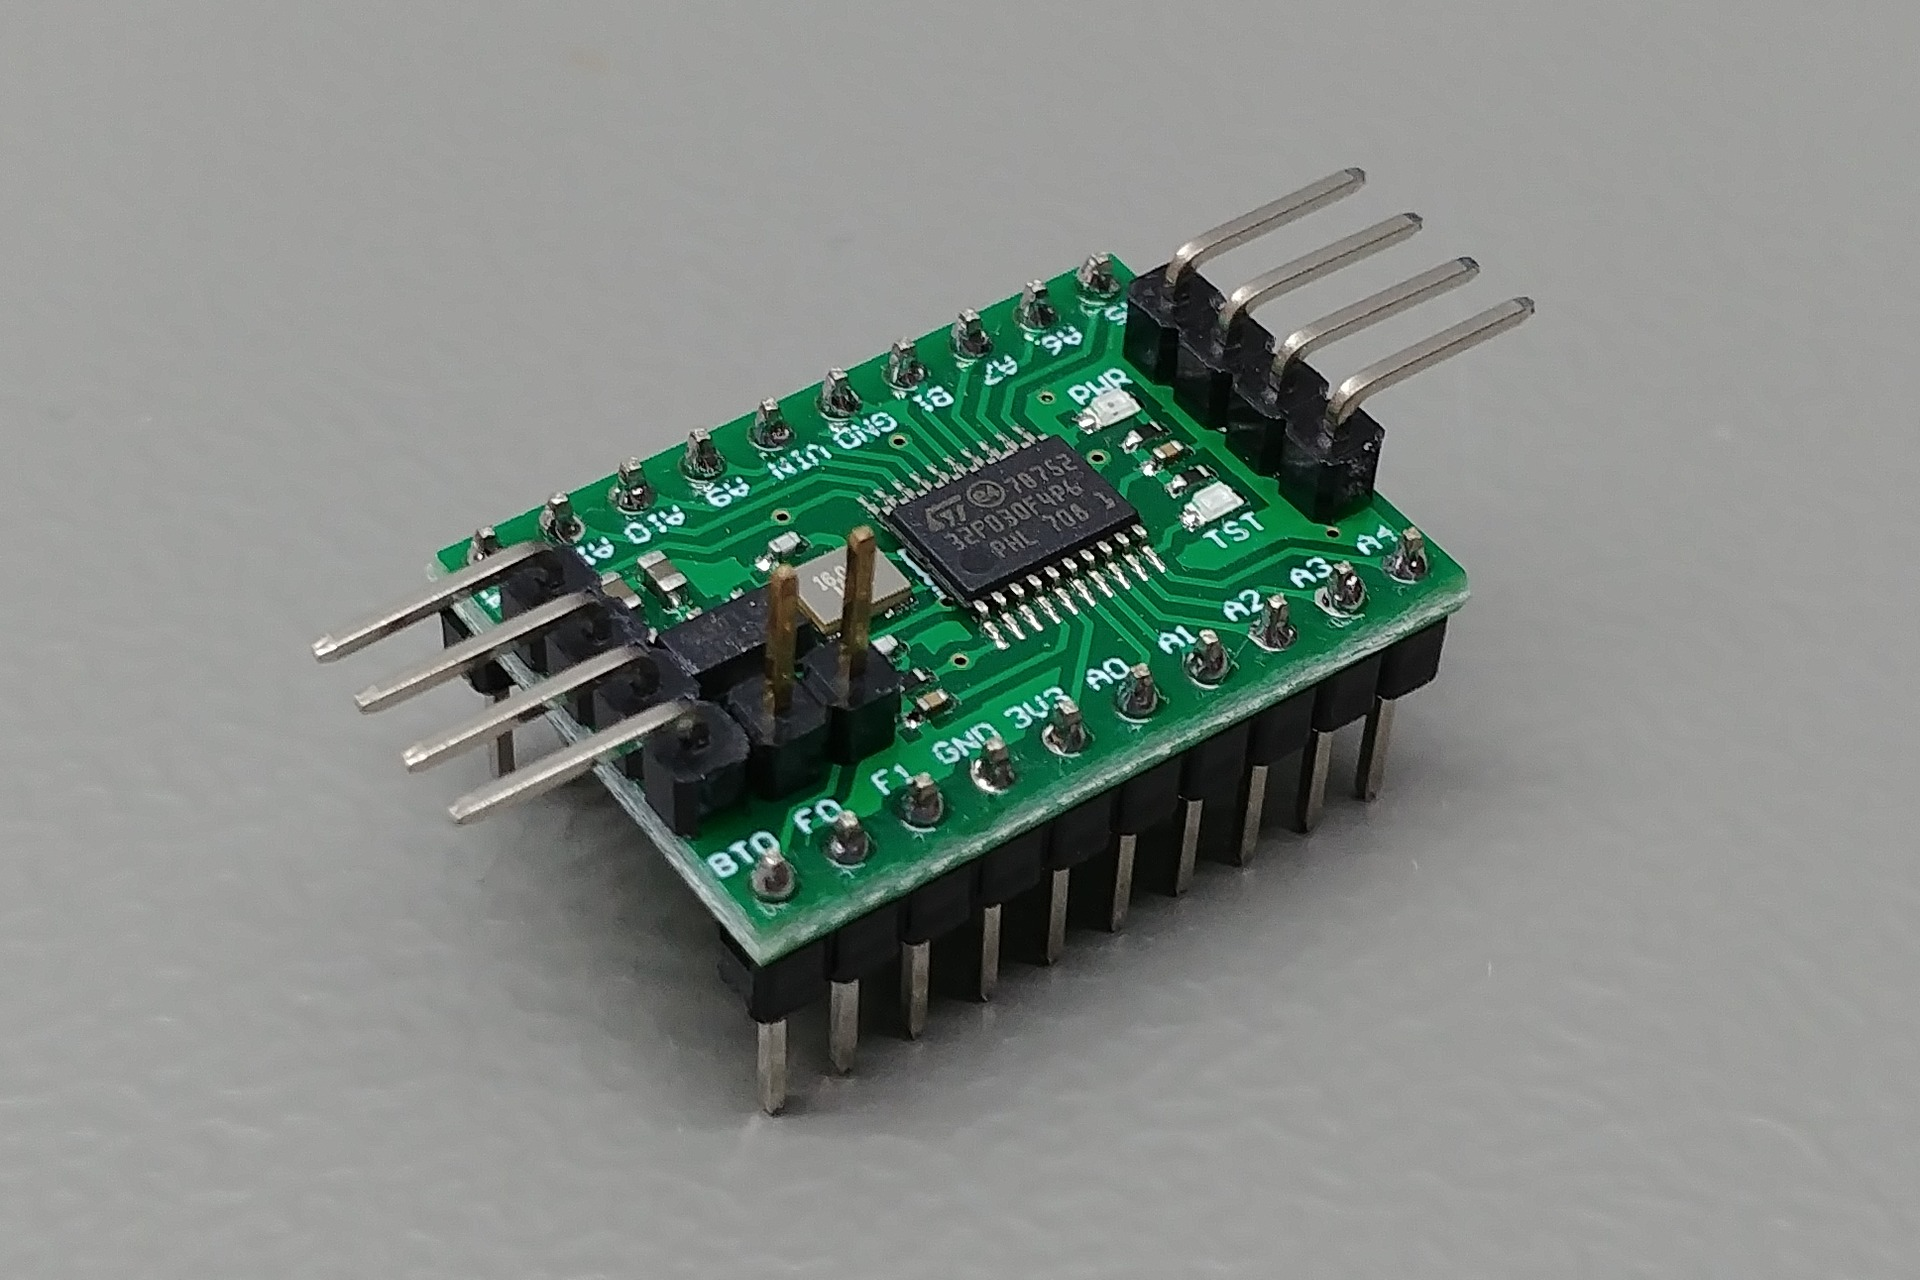 Picture of the Baite STM32F030F4 Module